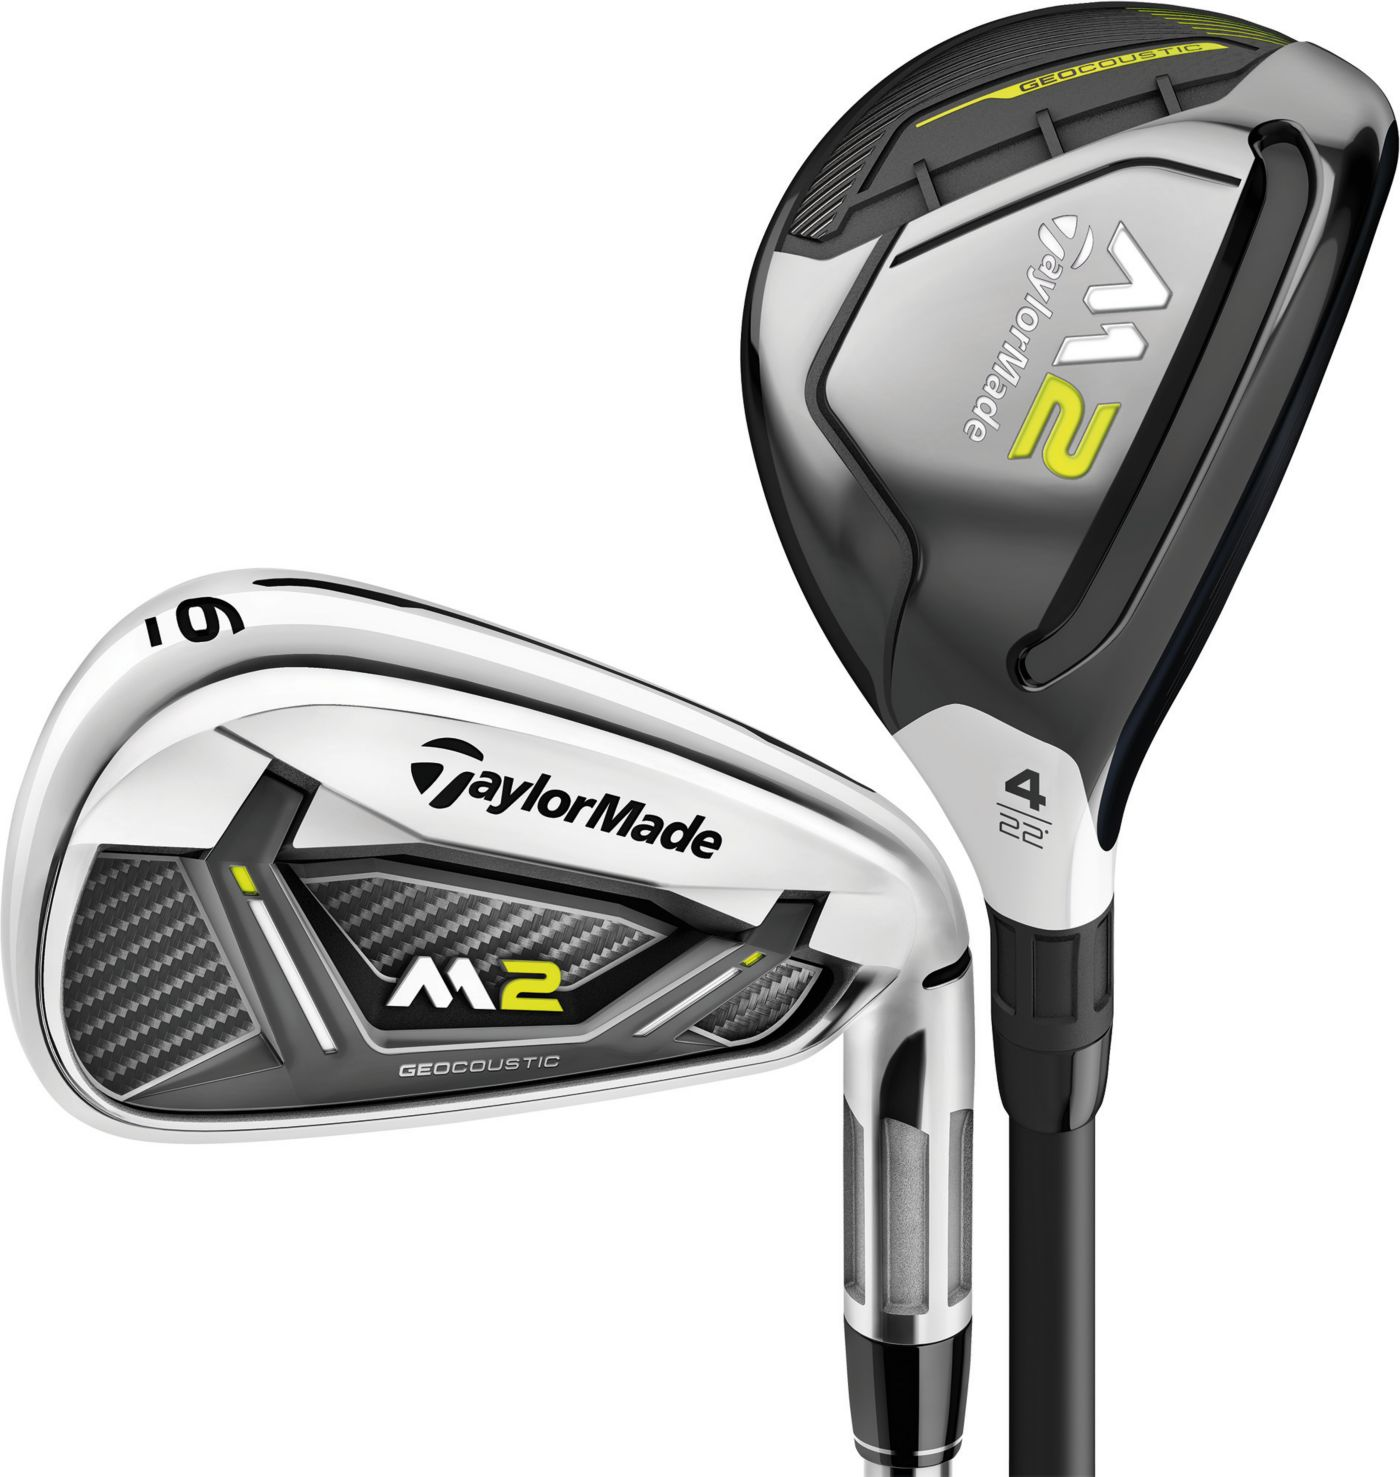 TaylorMade 2017 M2 Rescue/Irons - (Graphite)